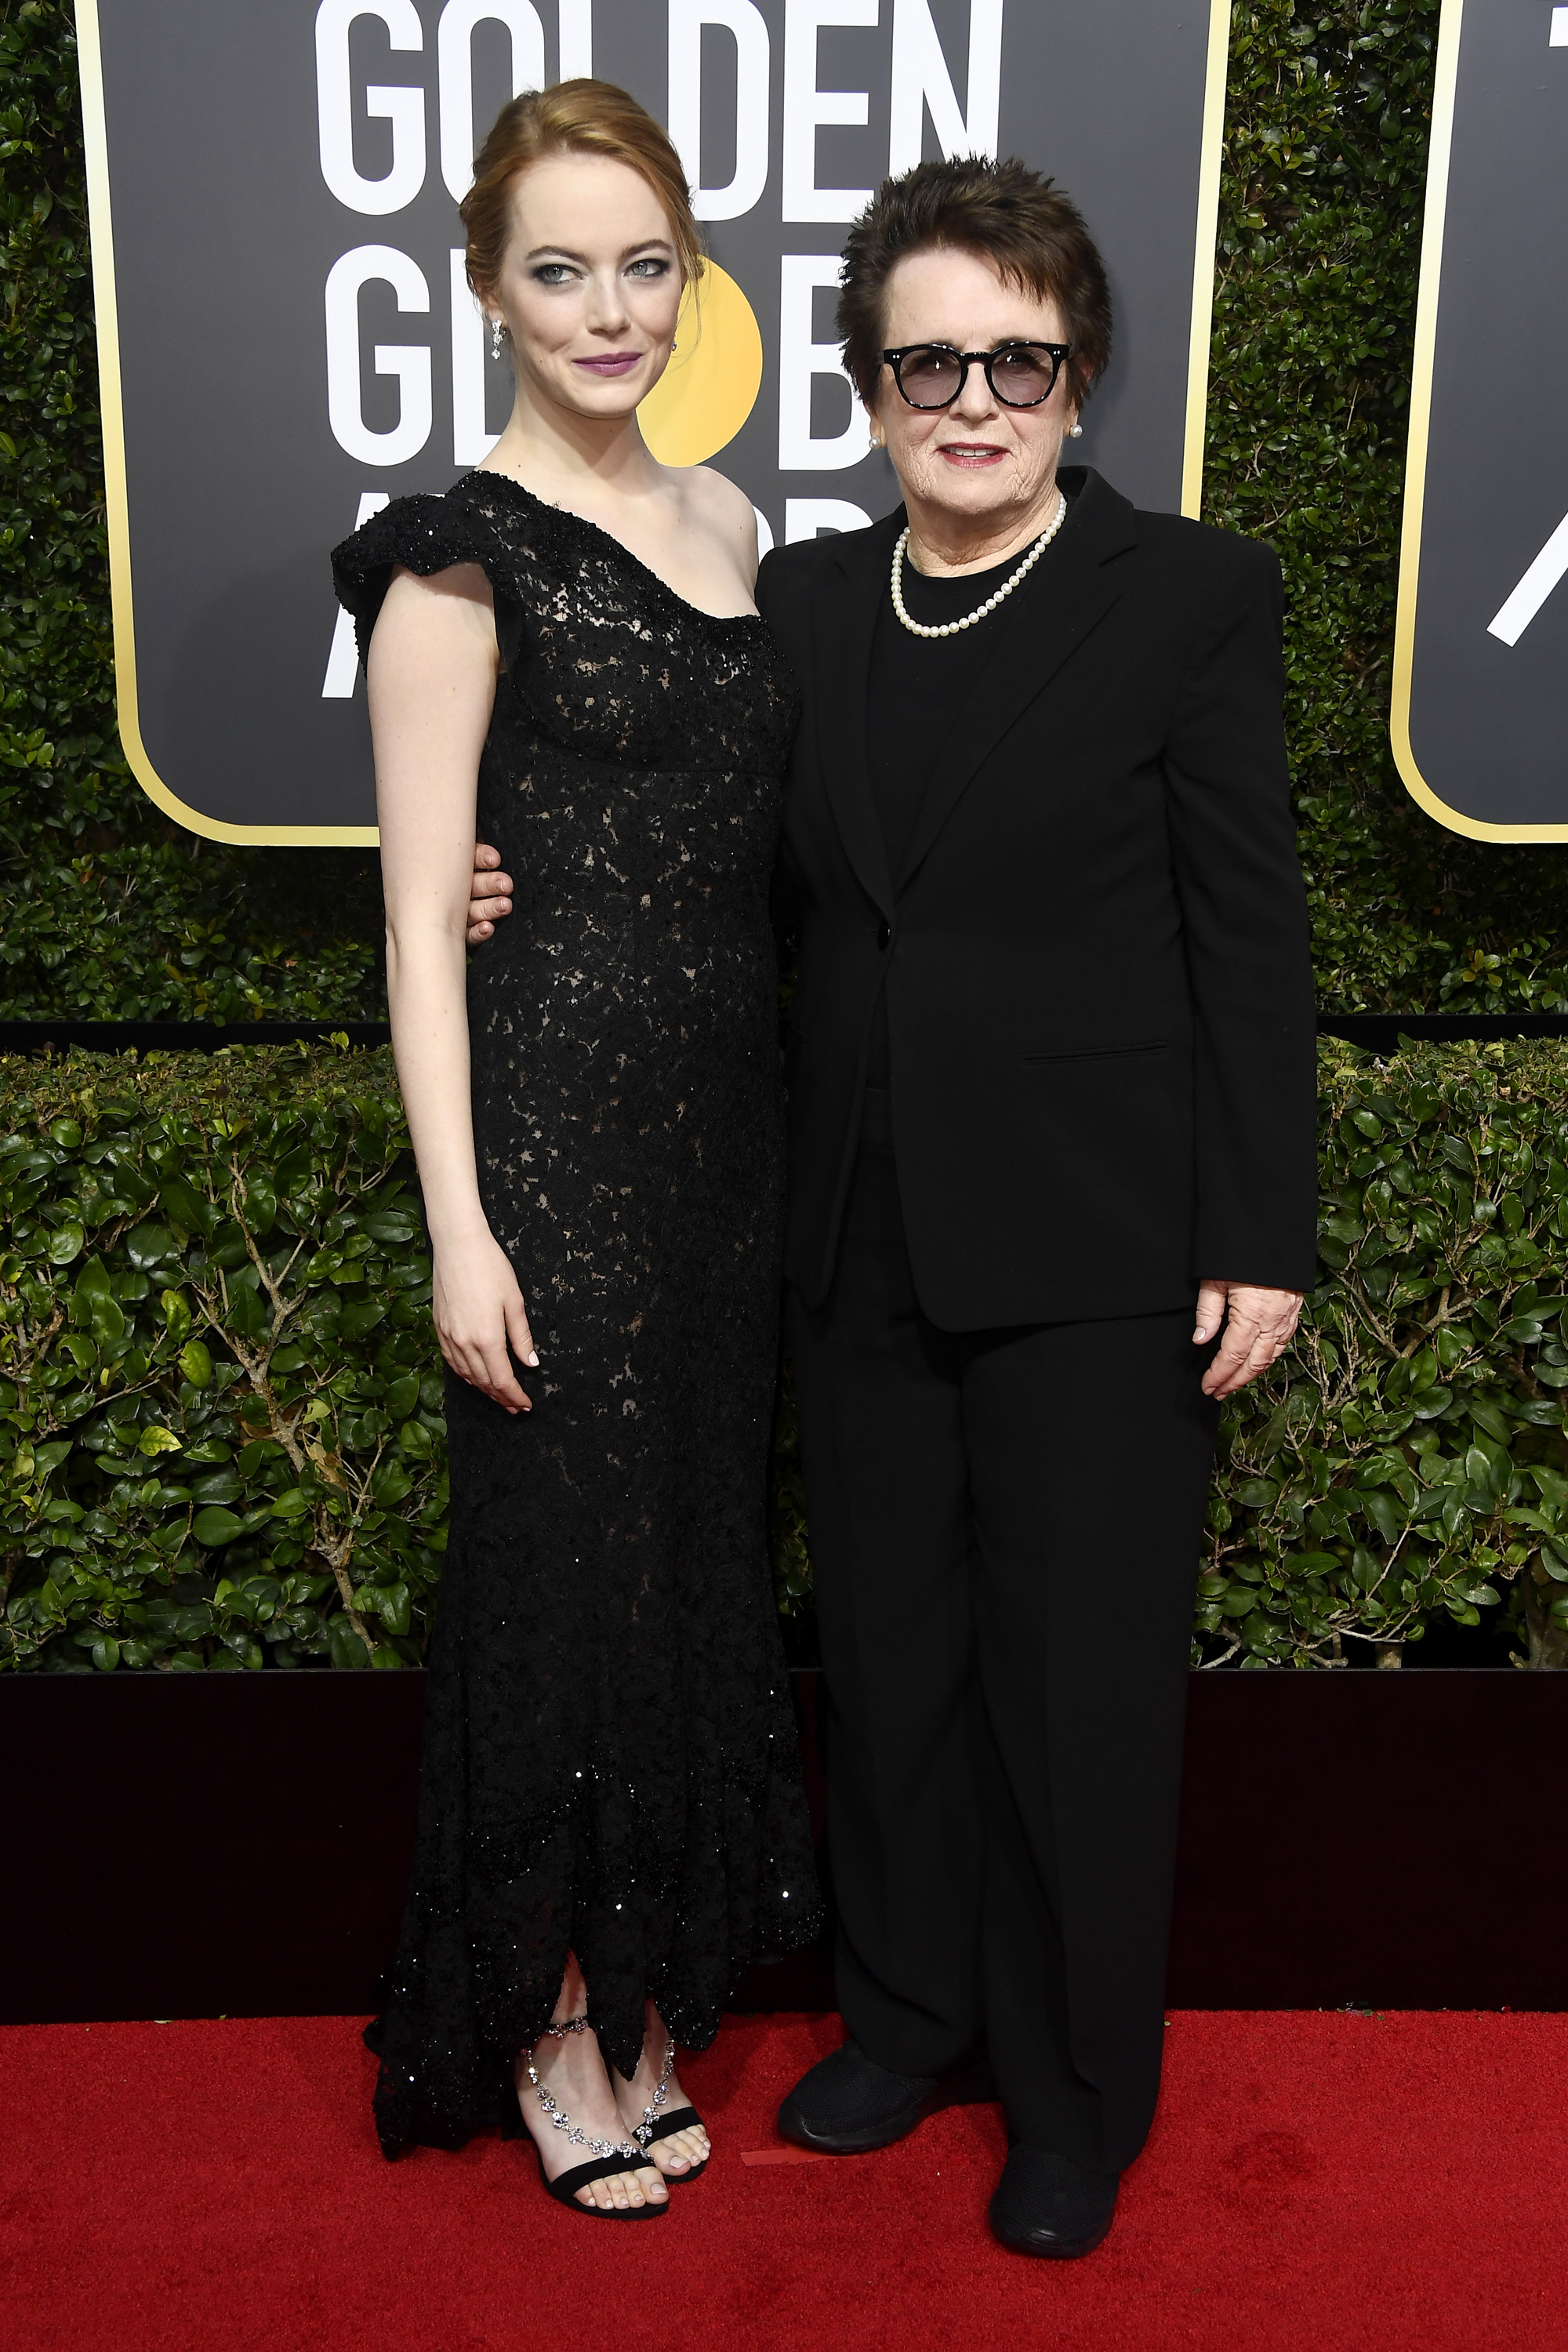 Emma Stone in the very same custom Louis Vuitton Dress. - Emma Stone and Billie Jean at the Golden Globes in 2018.